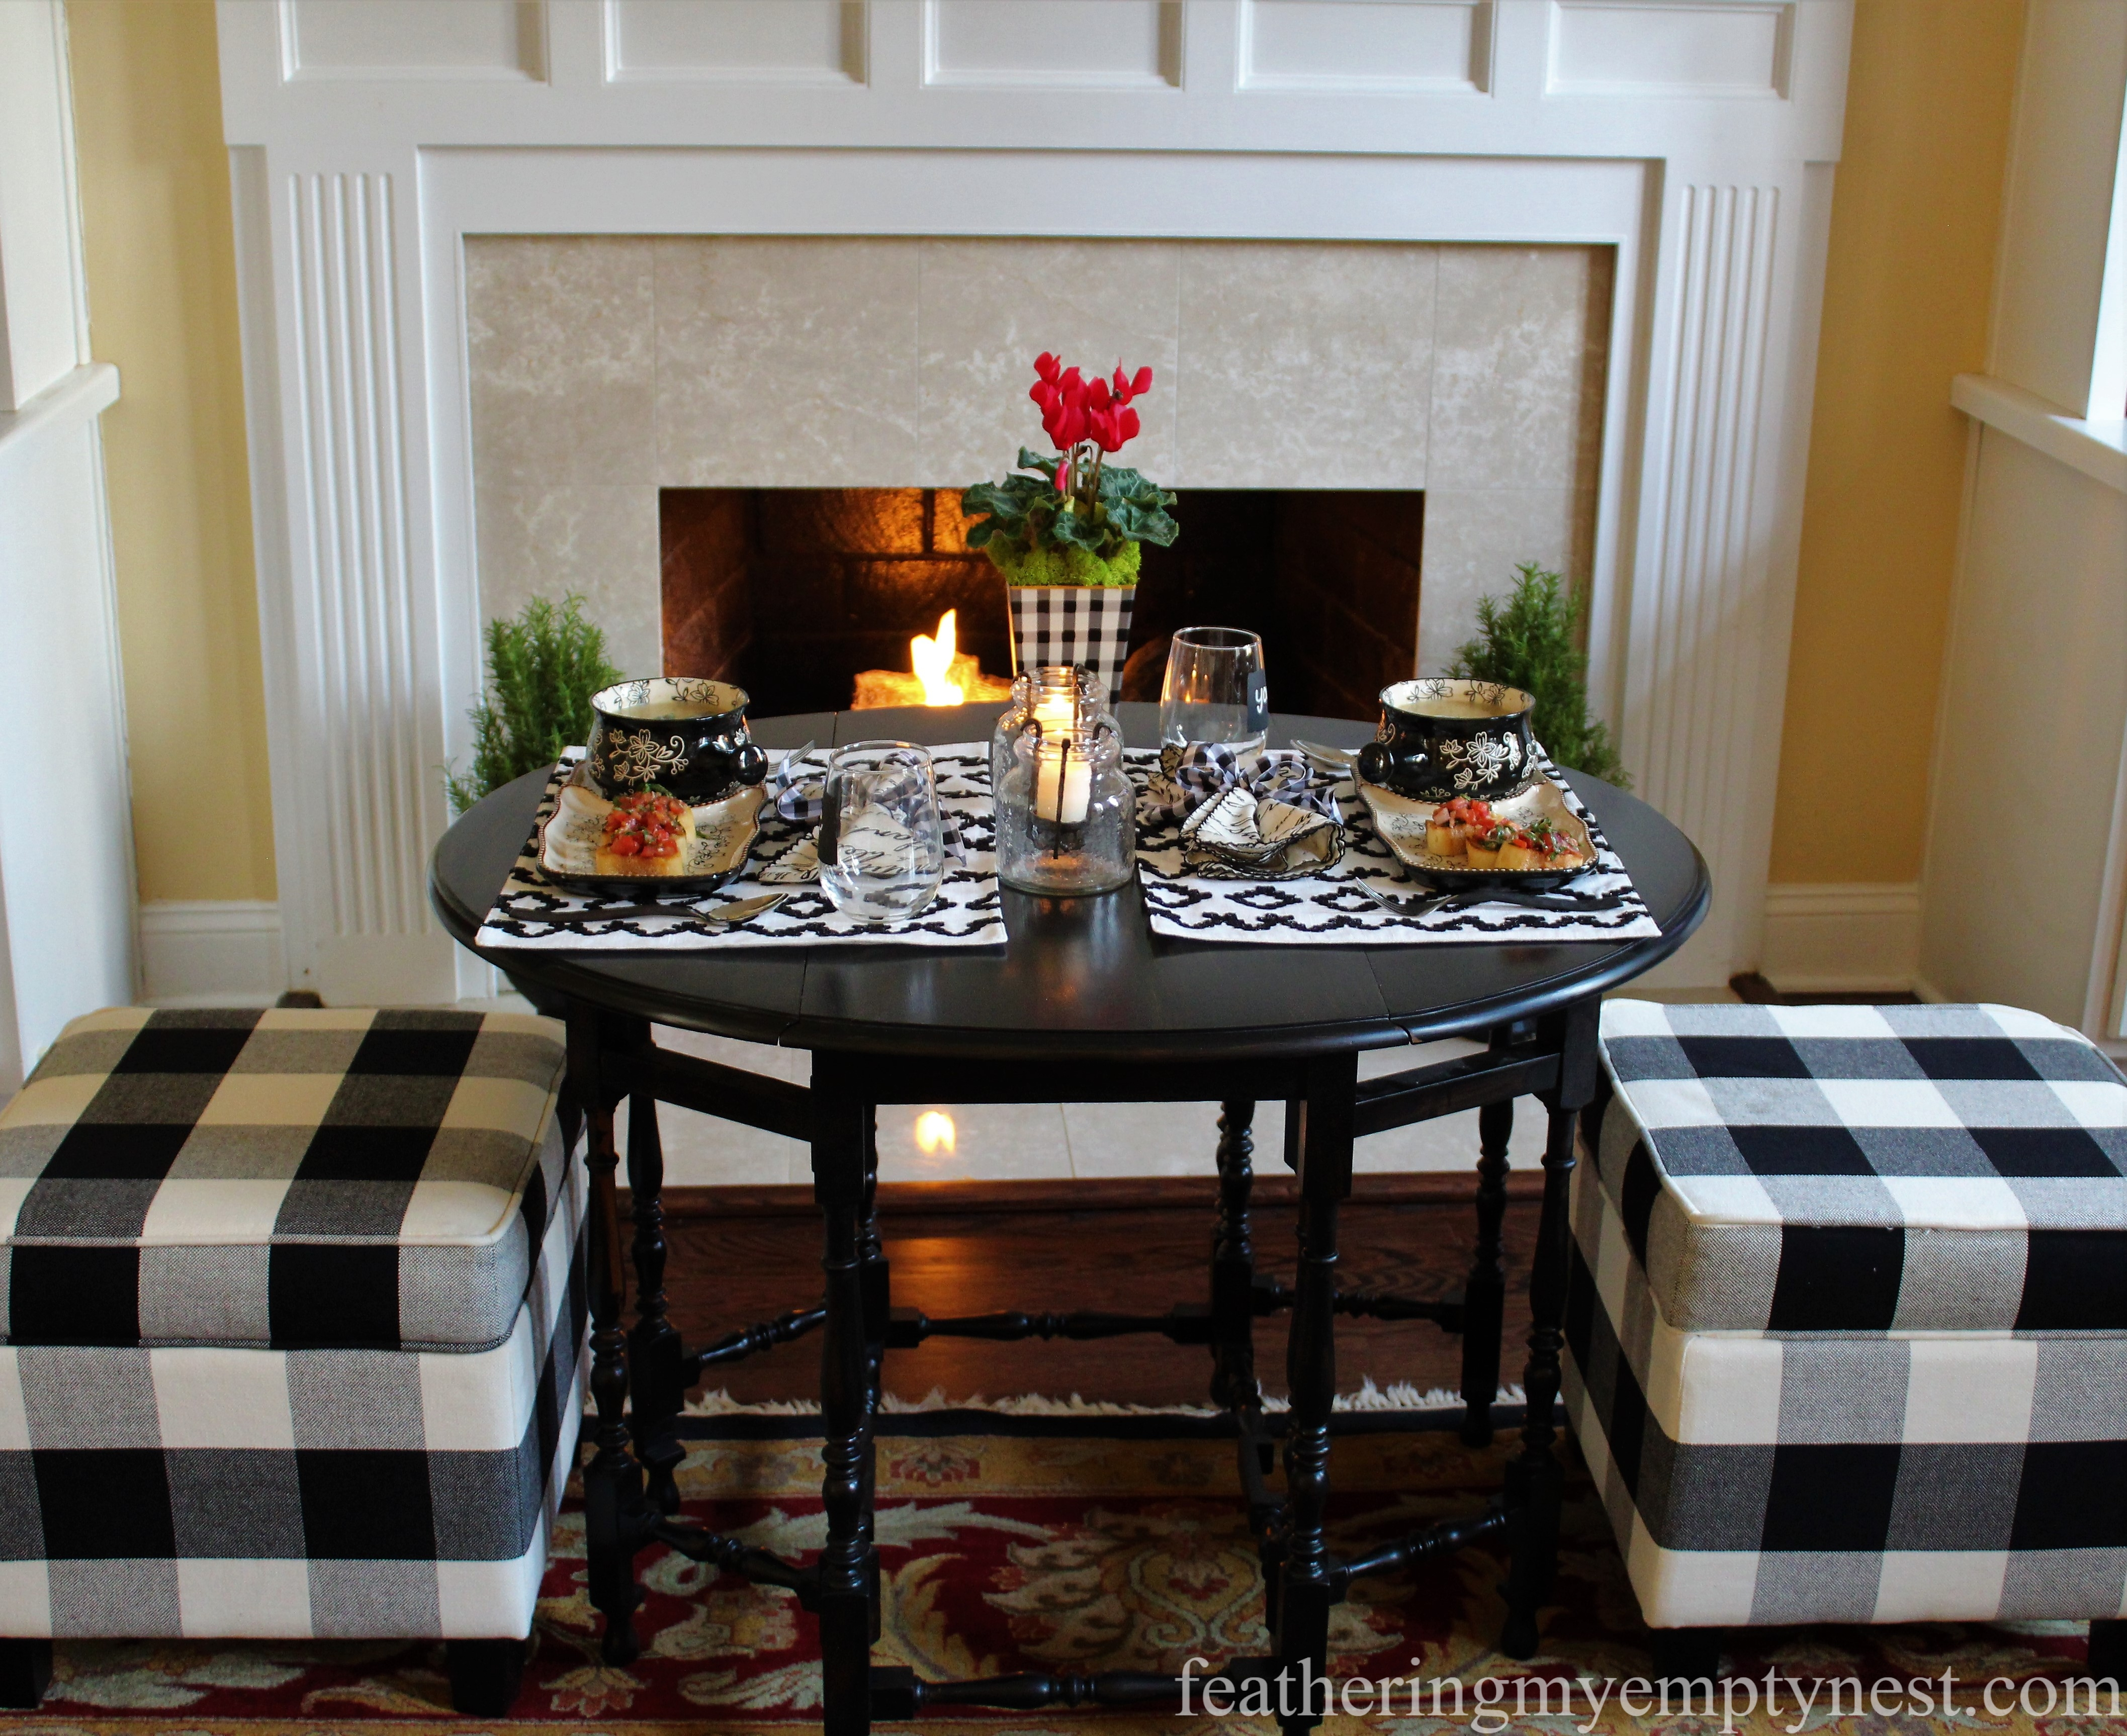 Black & White gingham dresses up this winter soup supper table --White Bean Soup & Bruschetta